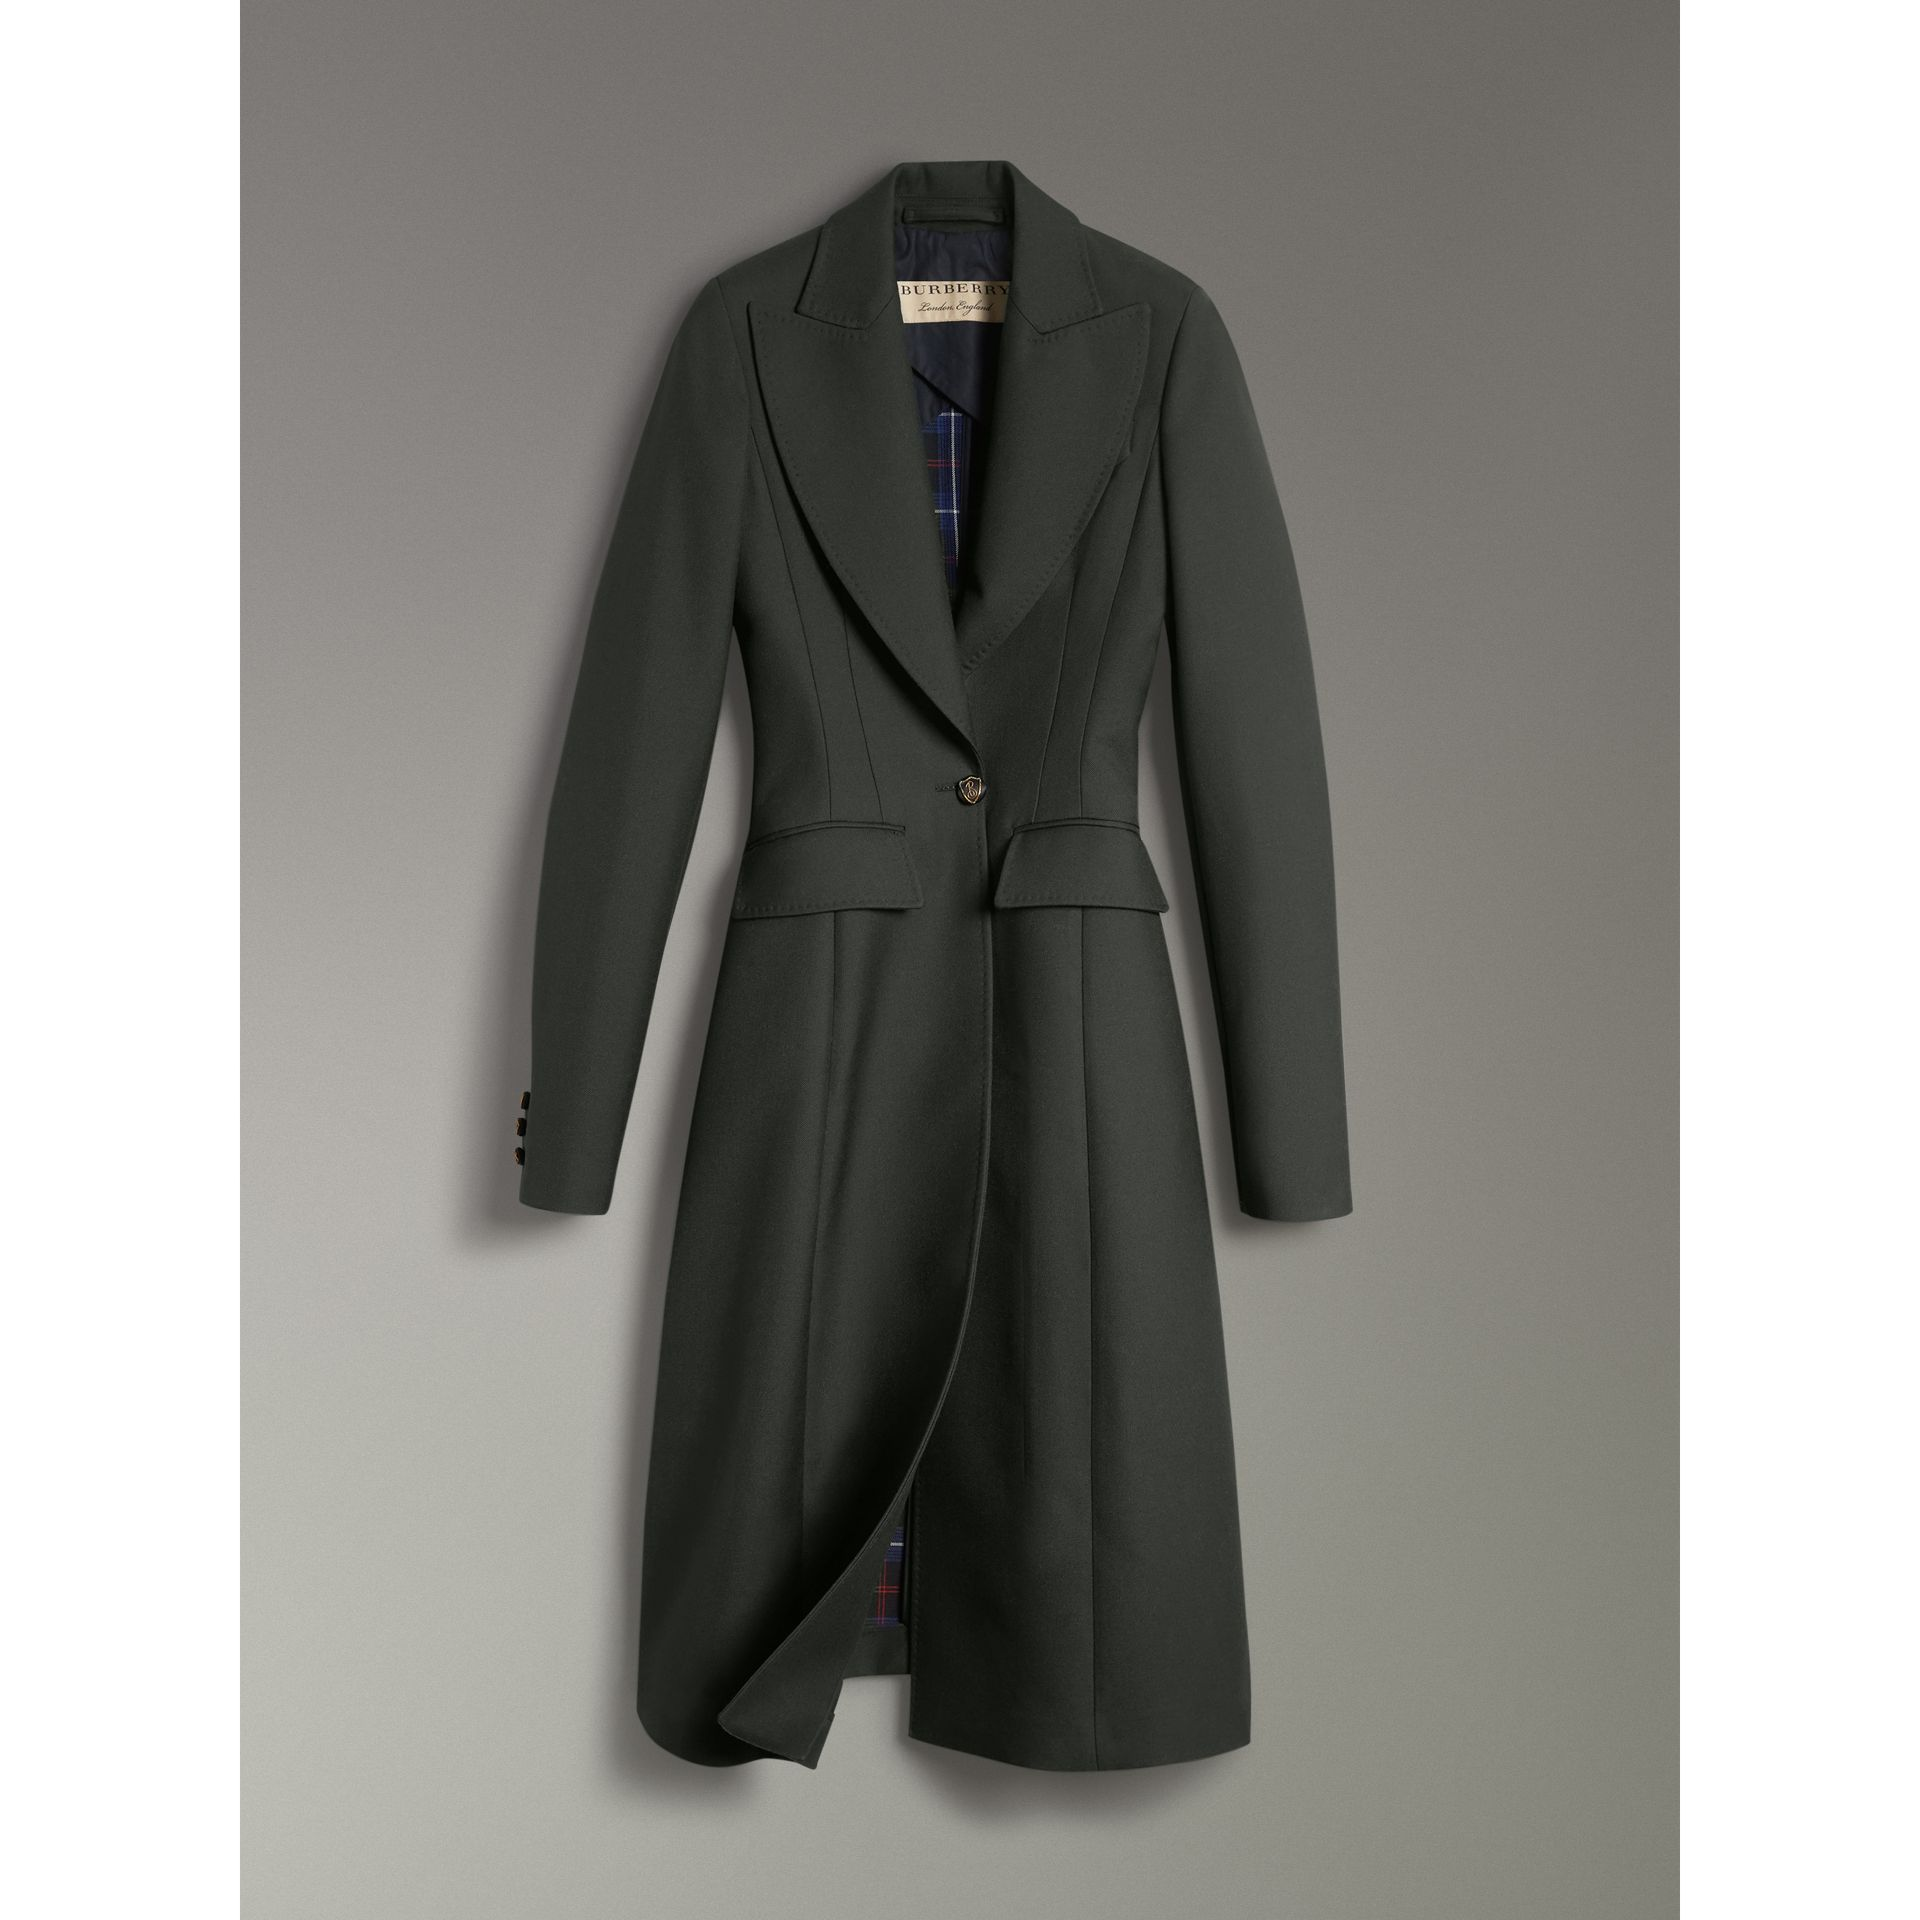 Cappotto sartoriale in lana con bottone decorato (Verdone Scuro/navy Intenso) - Donna | Burberry - immagine della galleria 3